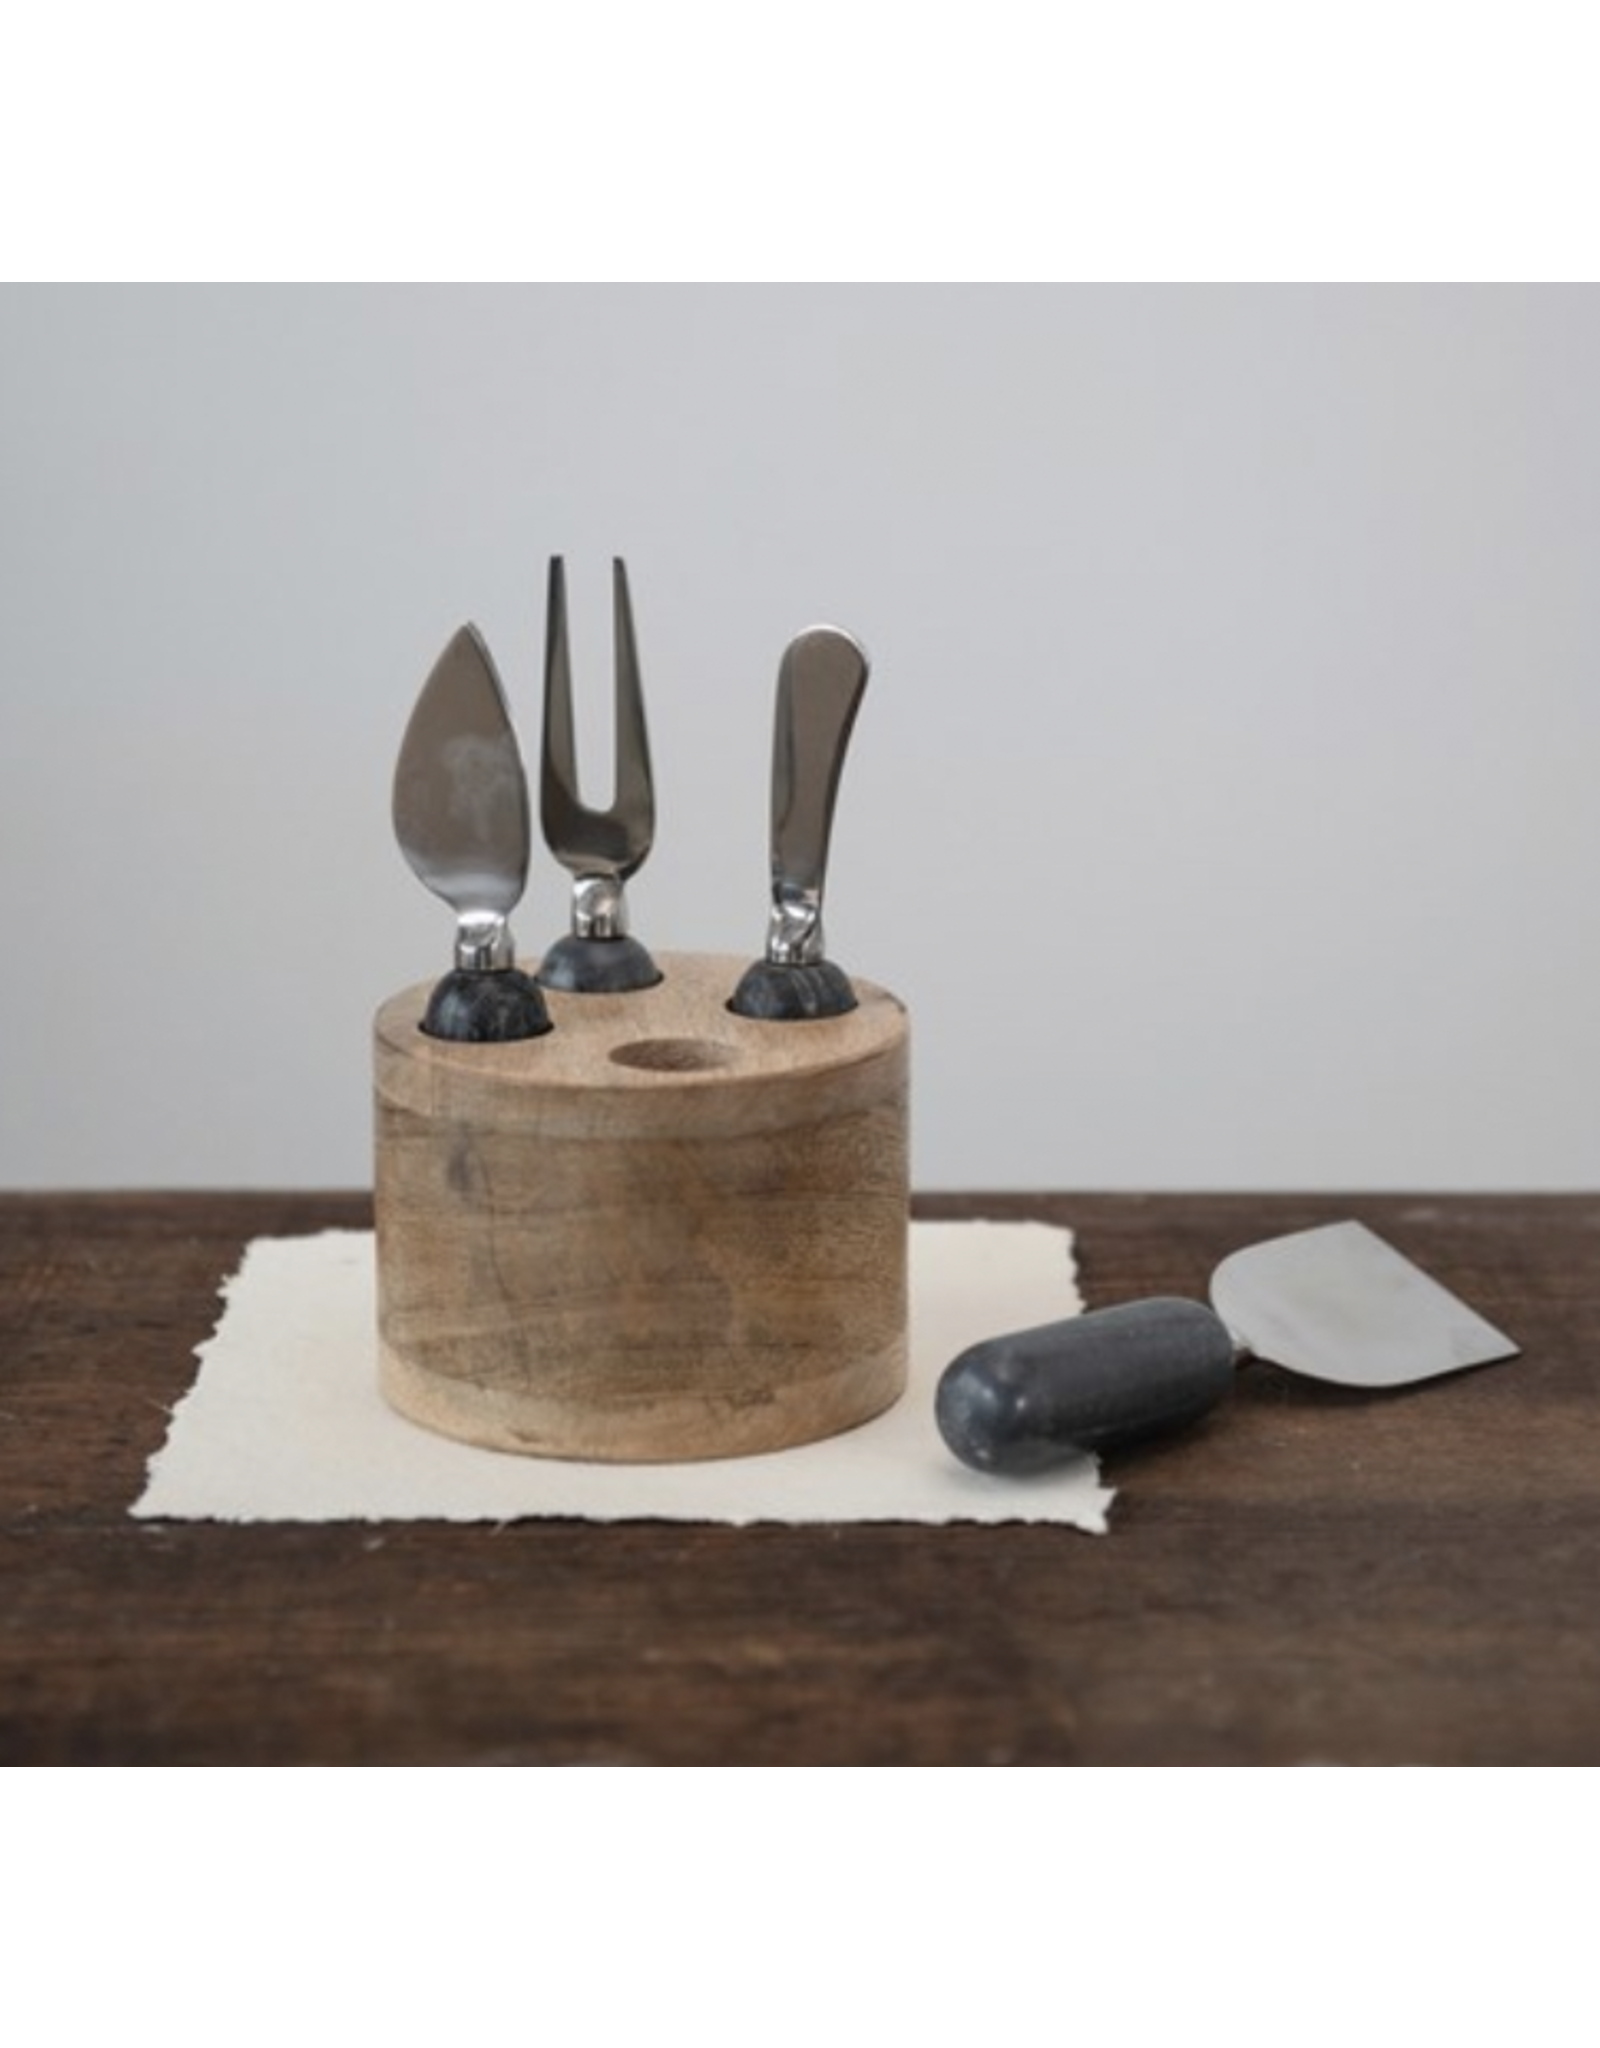 Creative Co-Op Stainless Steel Cheese Servers with Marble Handles